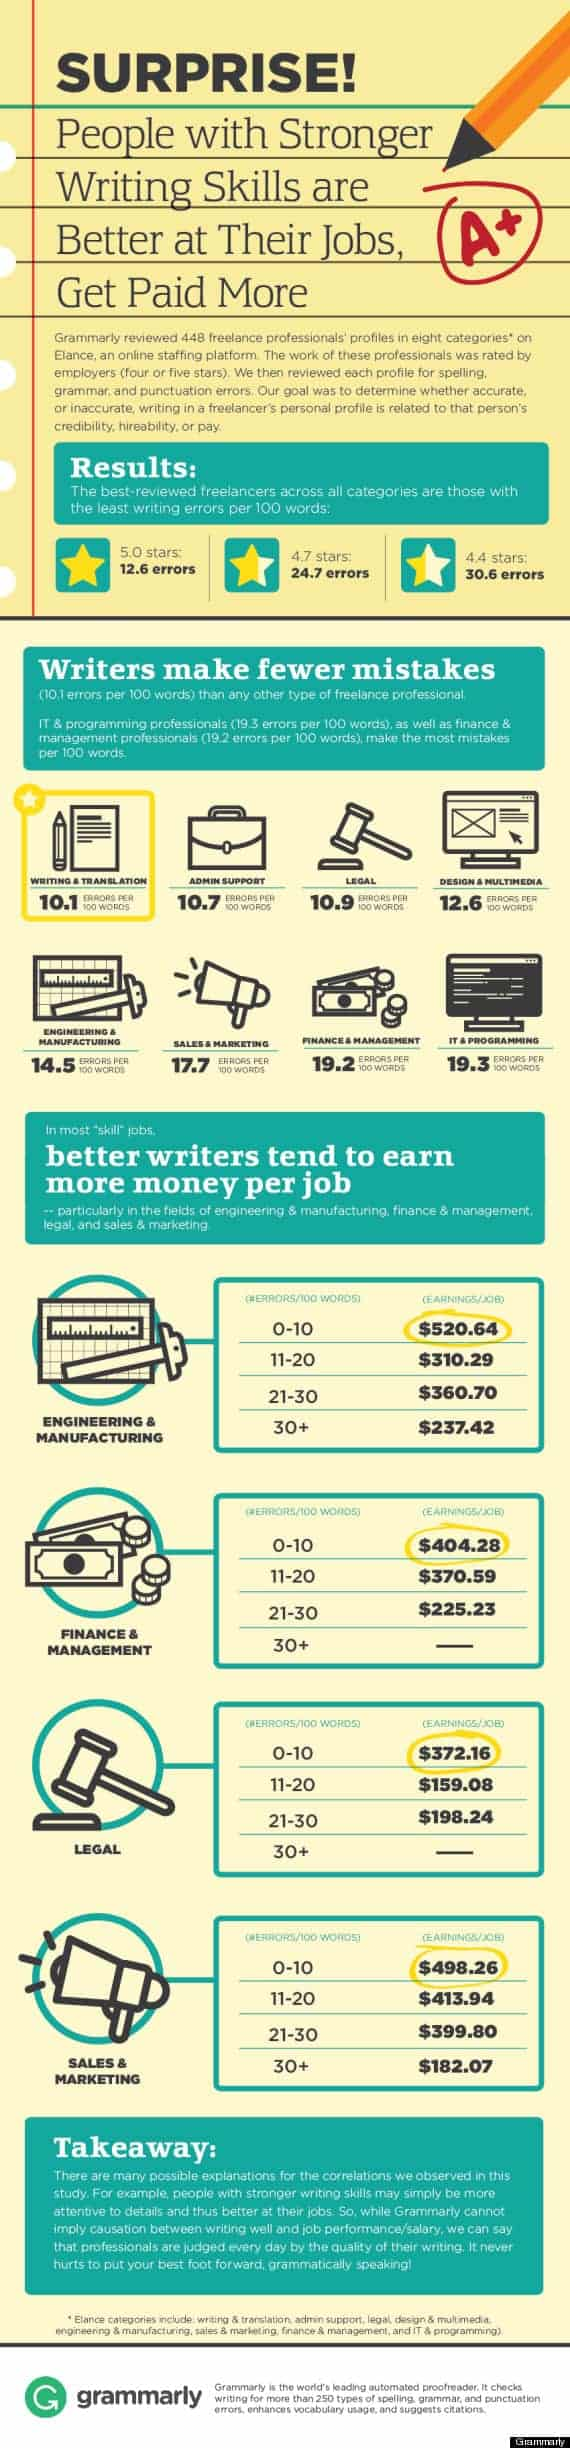 People With Stronger Writing Skills Are Better At Their Jobs